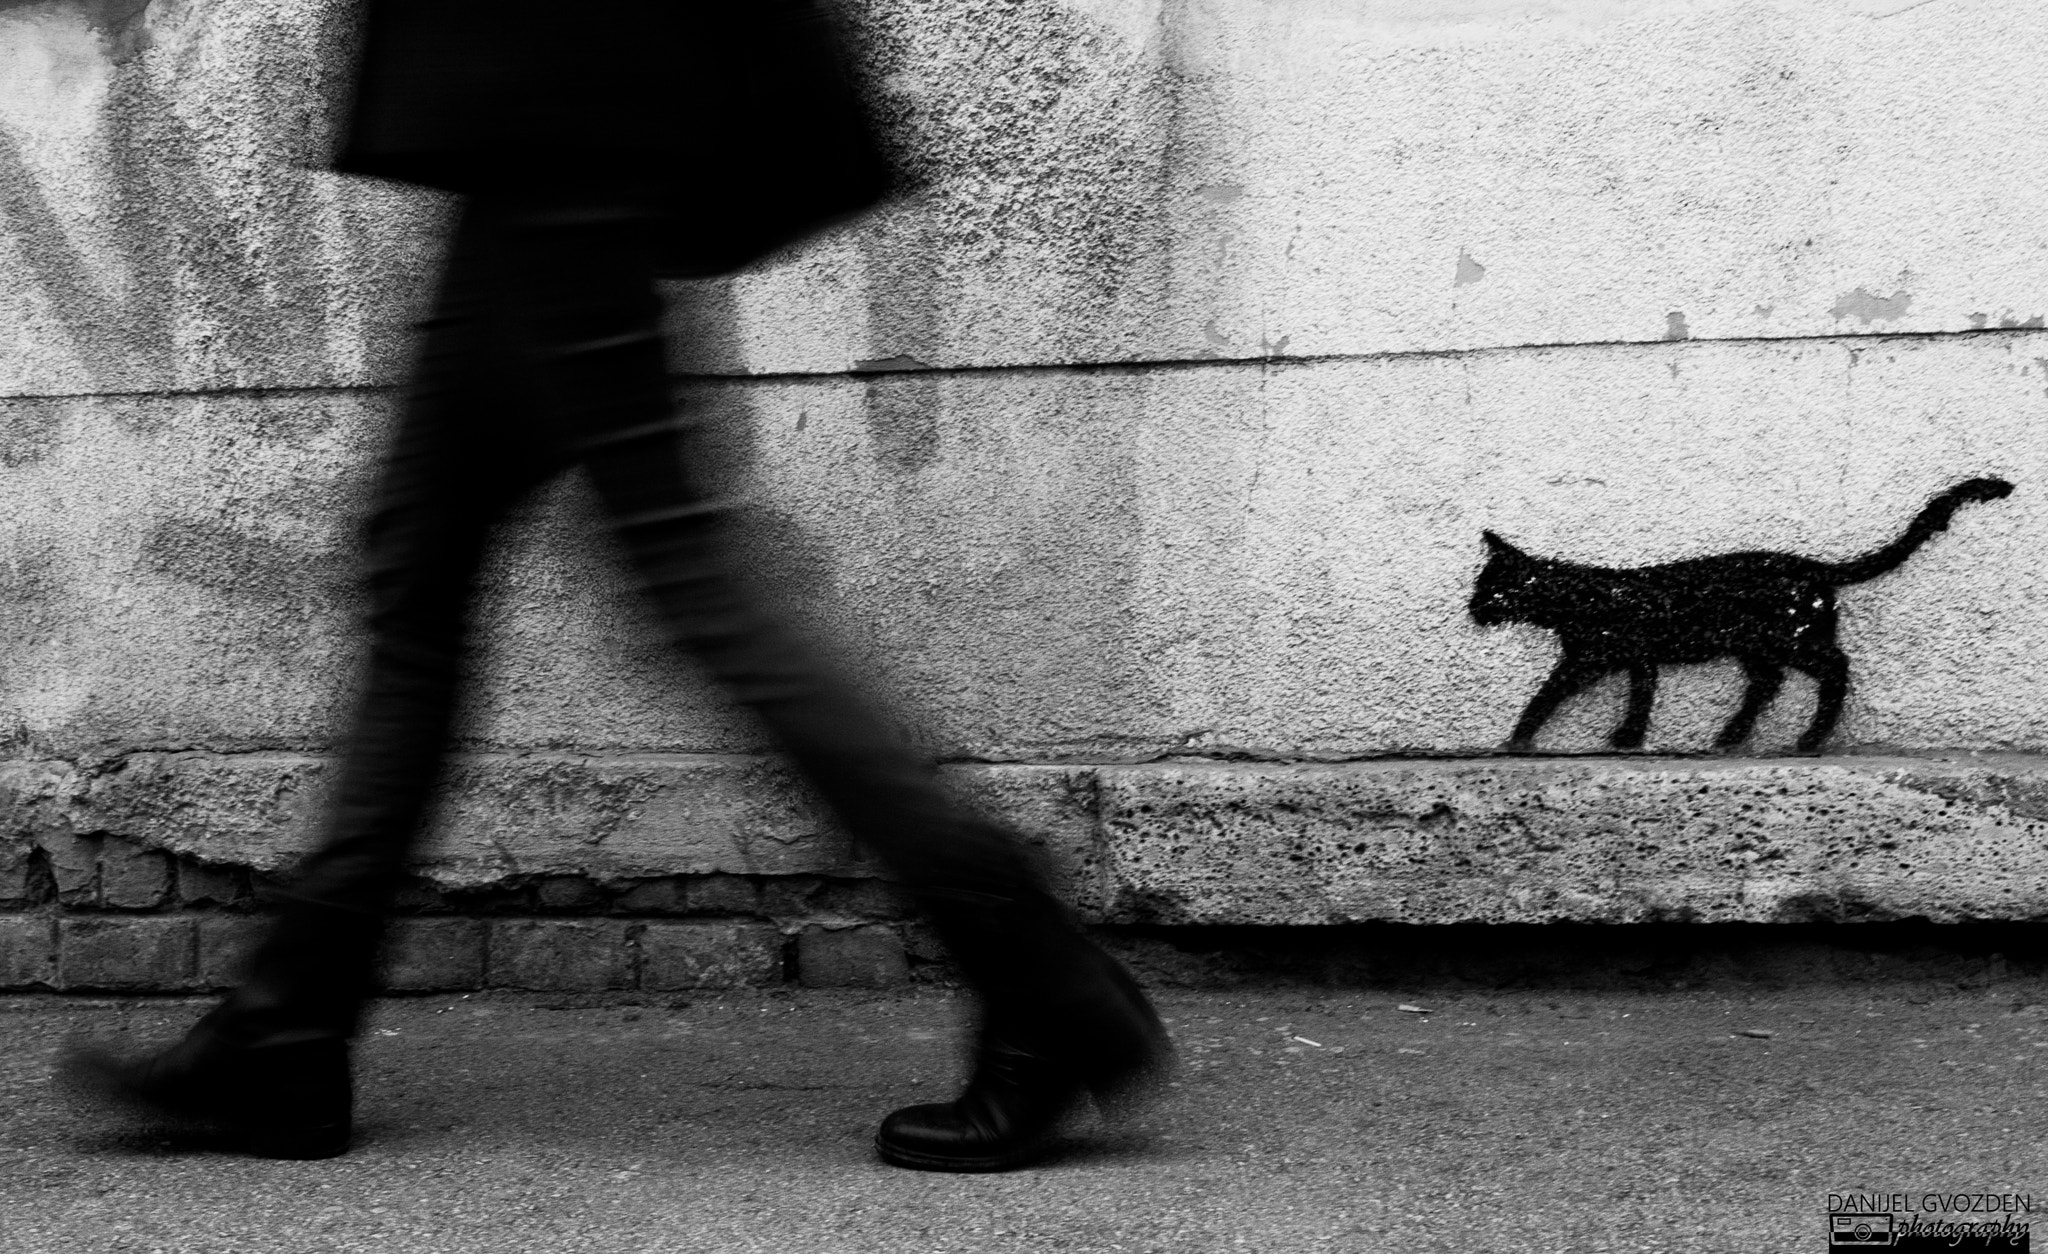 Photograph graffiti cat by danijel gvozden on 500px